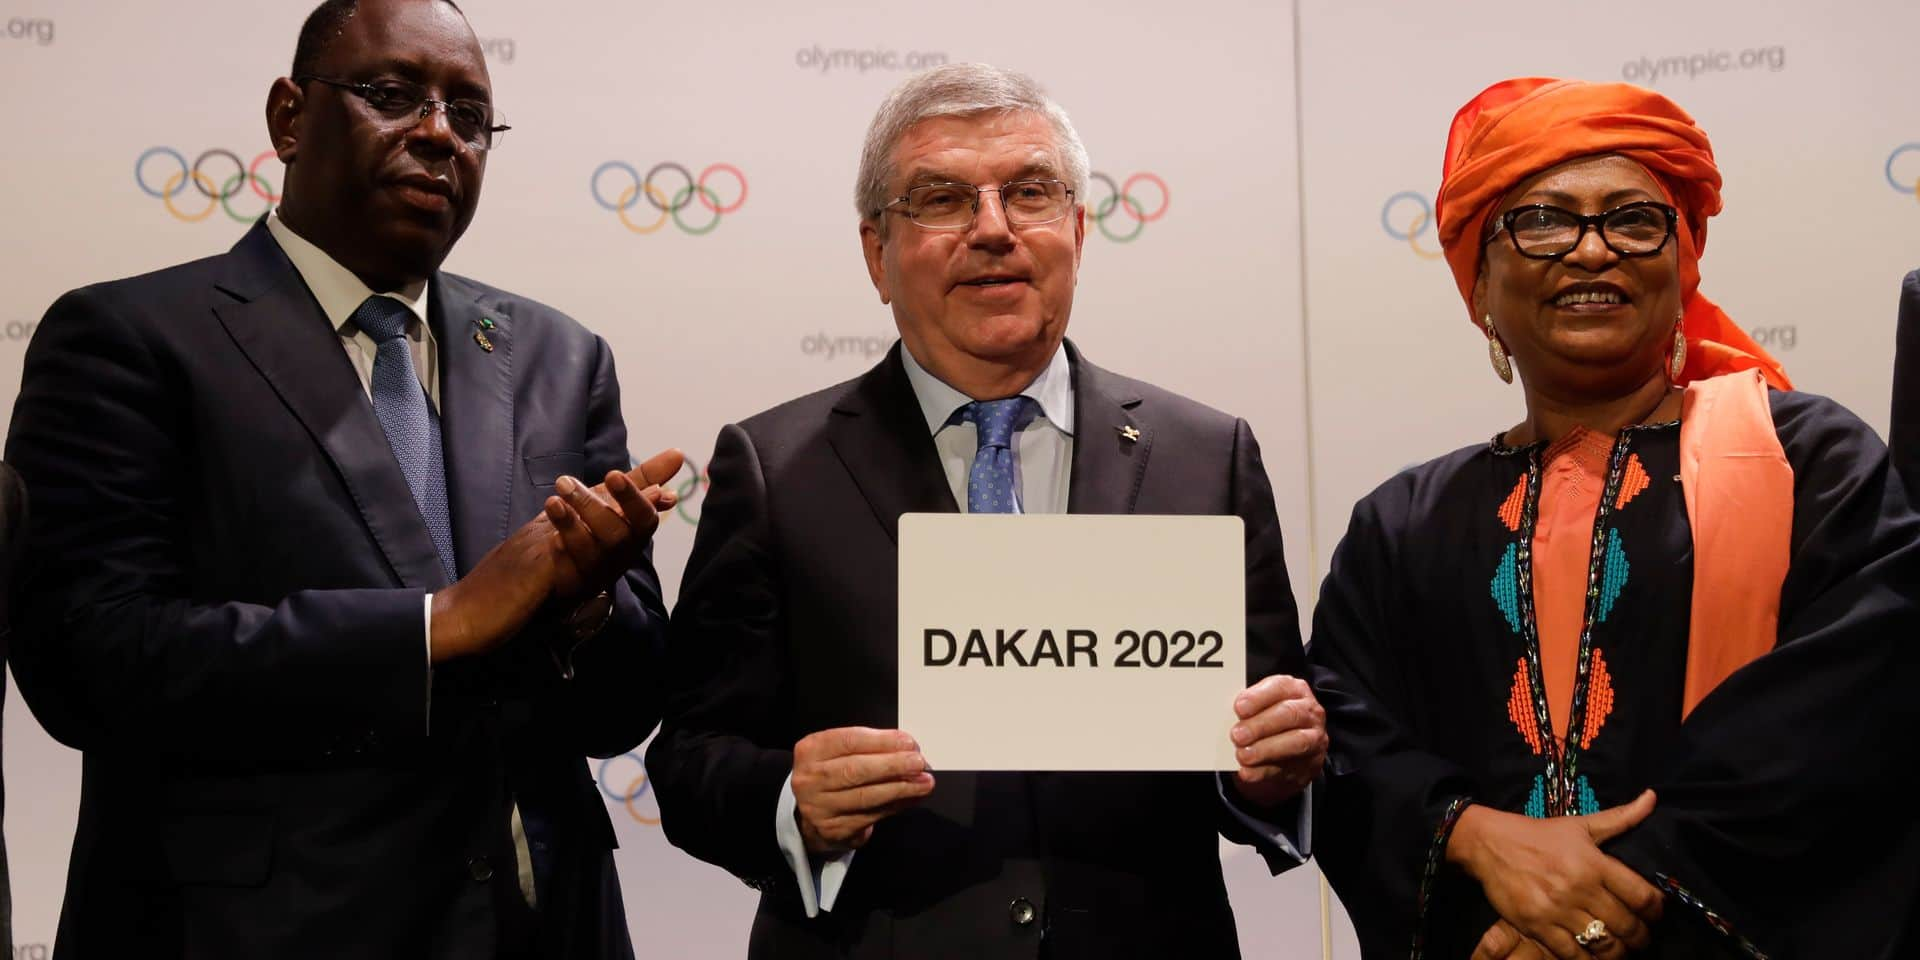 Senegal President Macky Sall, from left, and International Olympic Committee President Thomas Bach and Dakar Mayor Soham El Wardini, pose for a picture during the 133th IOC session in Buenos Aires, Argentina Monday, Oct. 8, 2018. Senegal will become the first African nation to host an Olympic event when in 2022 the nation will host the Youth Olympic Games. (AP Photo/Natacha Pisarenko, Pool)